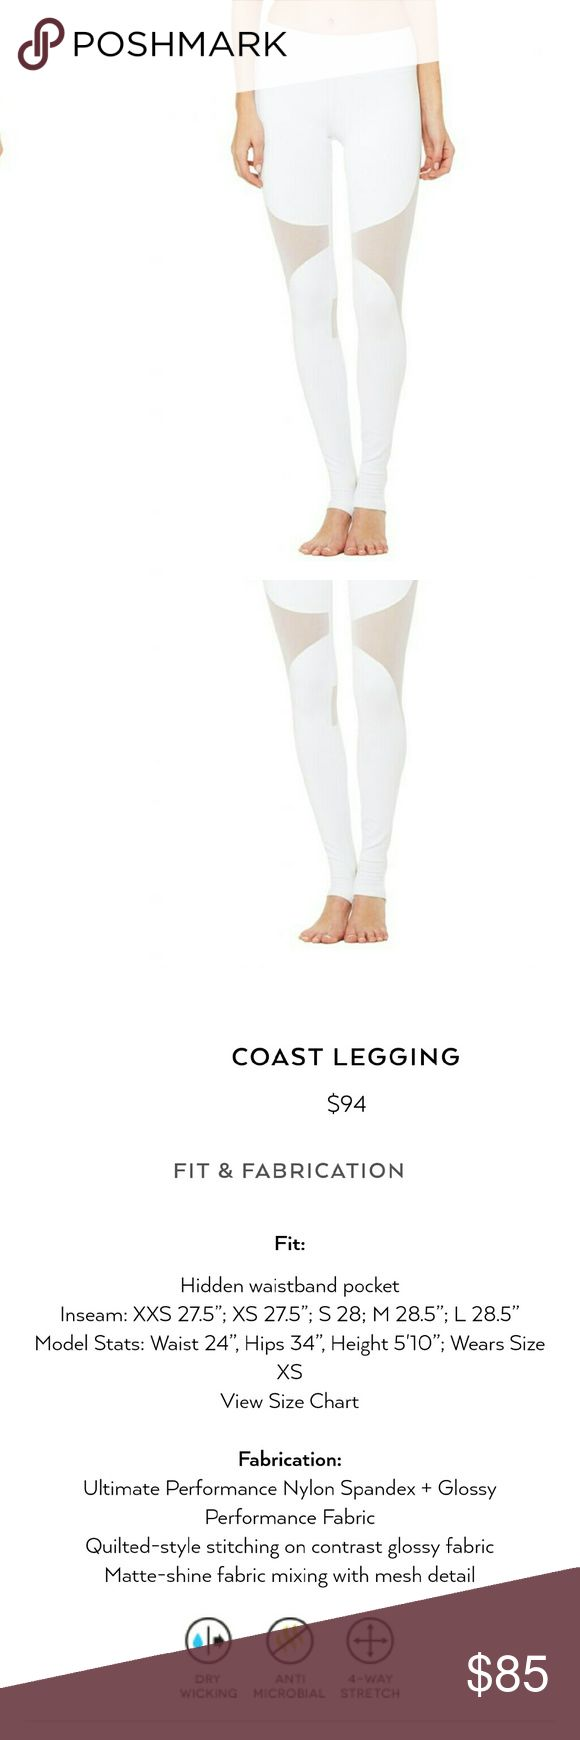 New alo yoga Coast leggings mesh athleisure lulu New alo yoga Coast leggings  Beautiful mesh detailing ... perfect athleisure  Whent on a shopping binge and now paying for it over the holidays :( needs a good home  Also have it in.... Grey S Black S ALO Yoga Pants Leggings